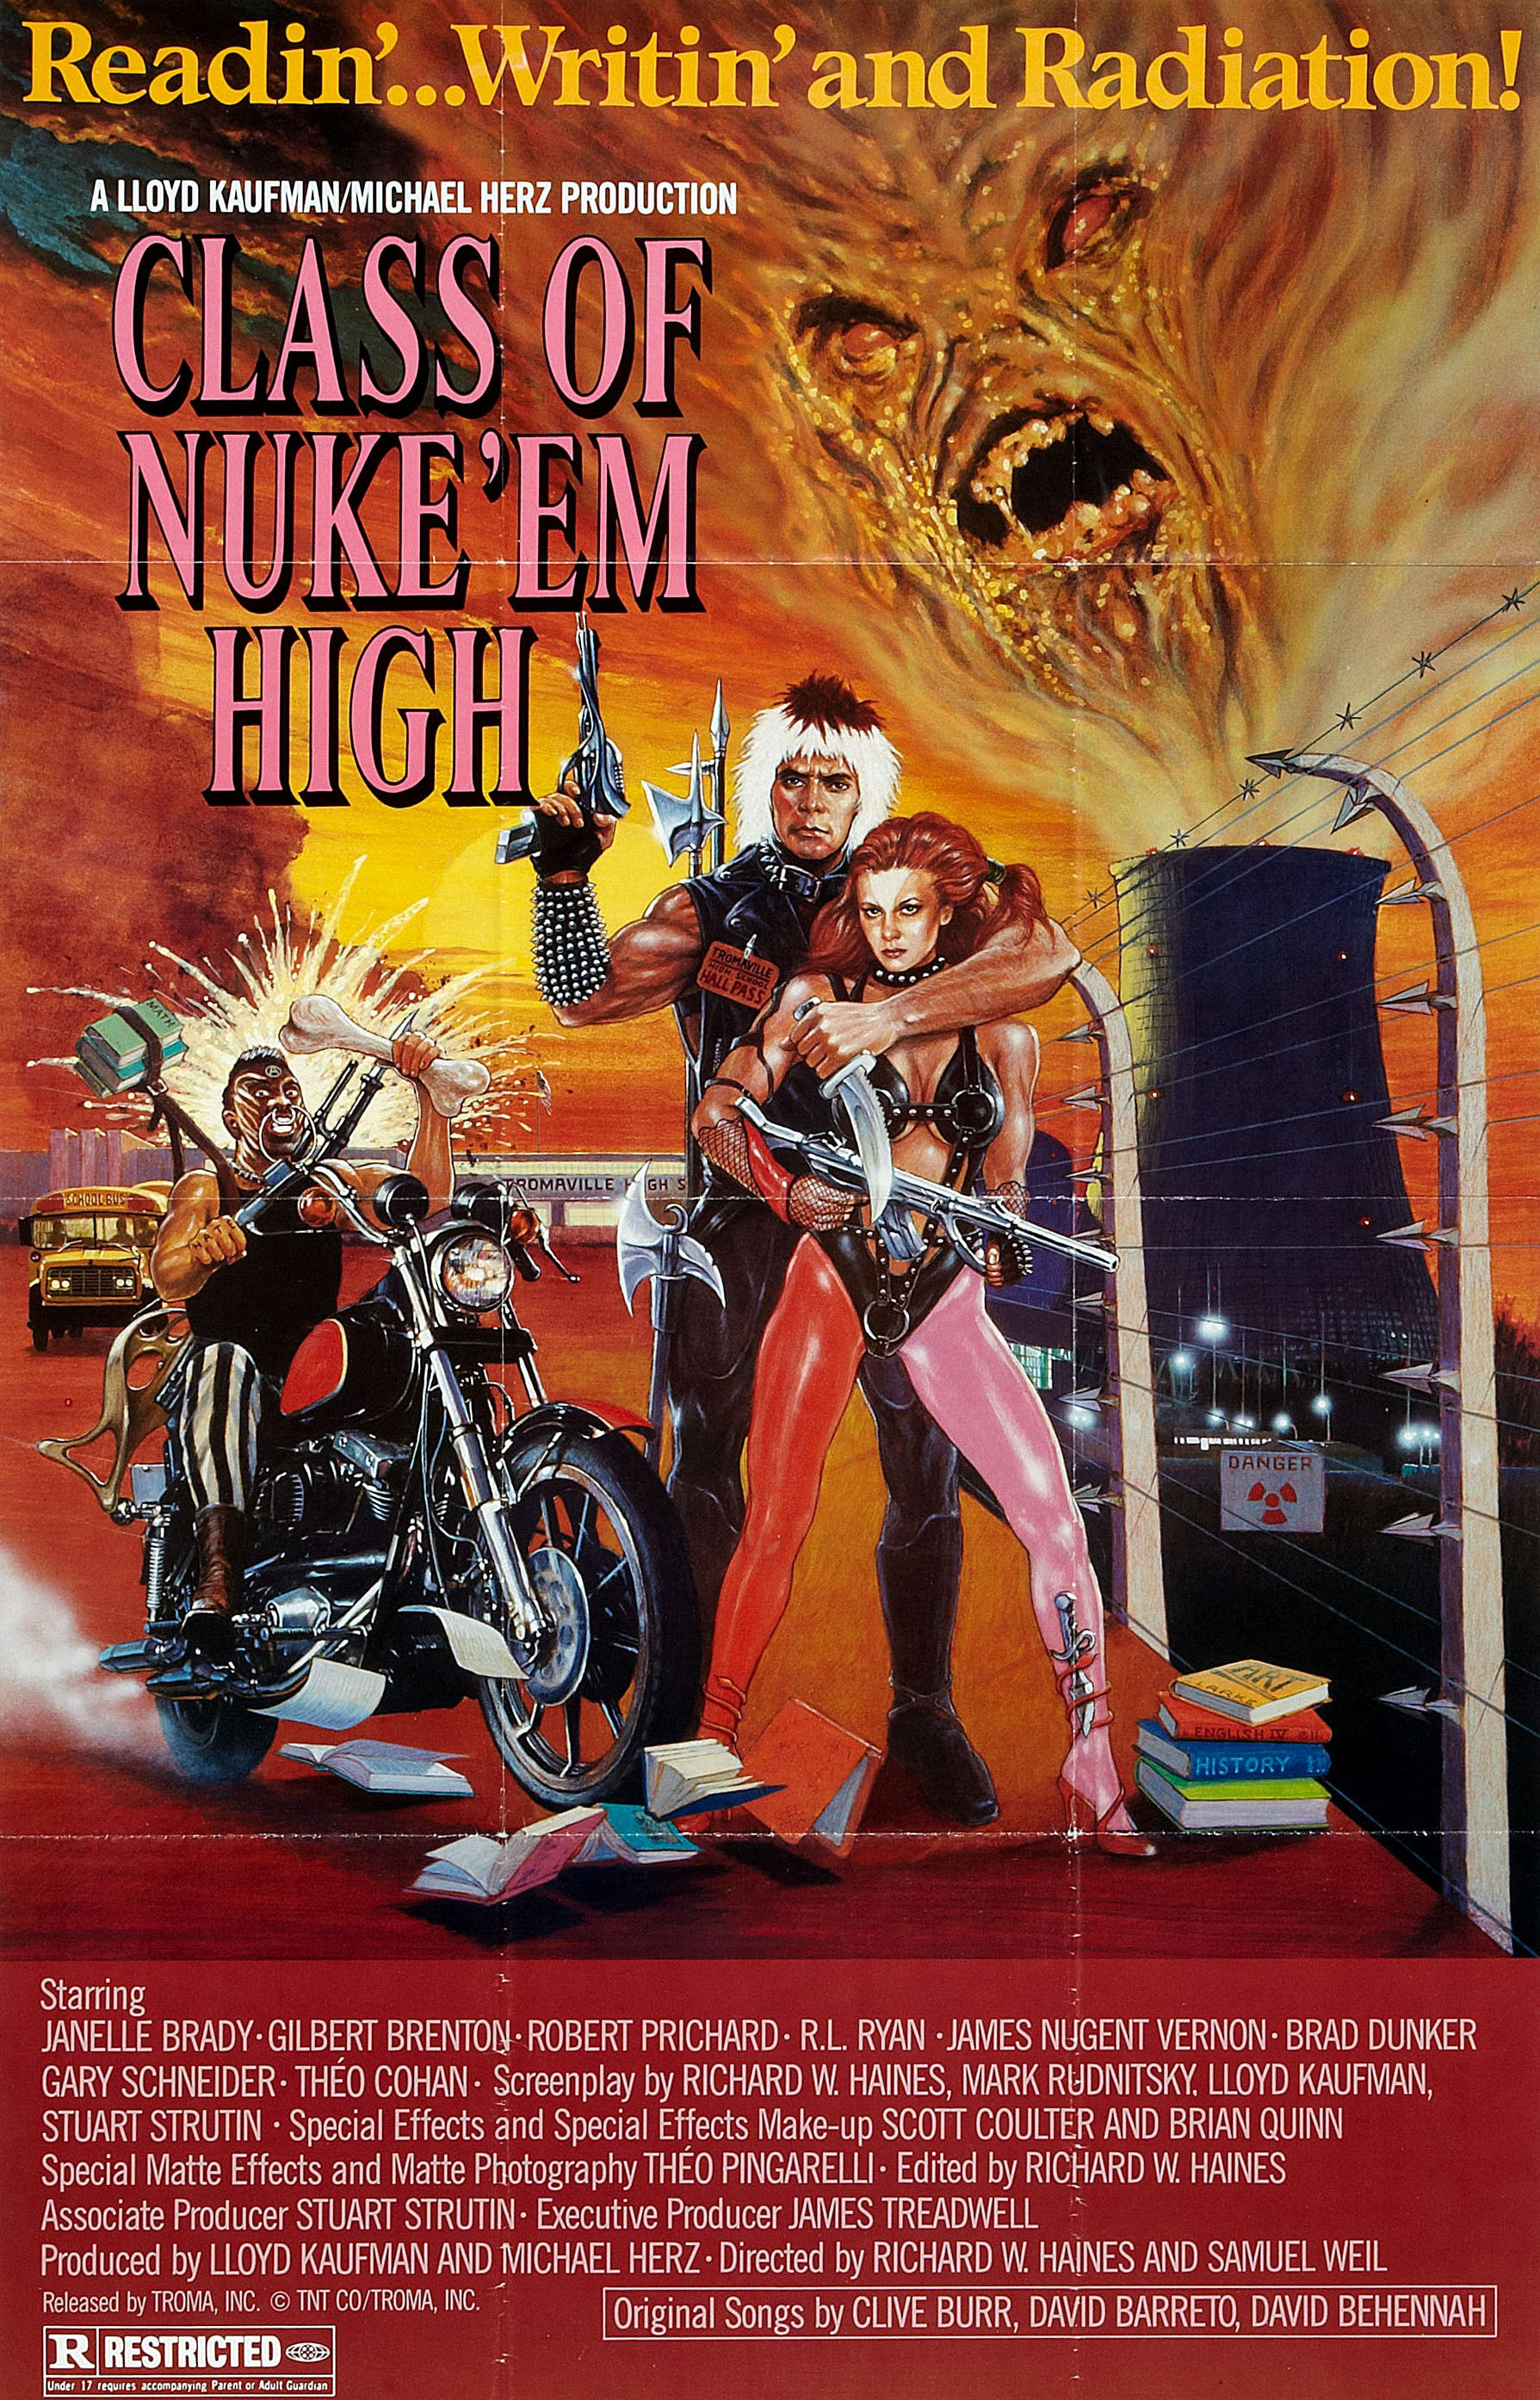 Class of Nuke 'Em High (1986) - Directed by: Richard W. Haines, Lloyd KaufmanStarring: Janelle Brady, Gil Brenton, Robert PrichardRated: RRunning Time: 1 h 25 mTMM Score: 2 stars out of 5STRENGTHS: Practical EffectsWEAKNESSES: Pacing, Boring